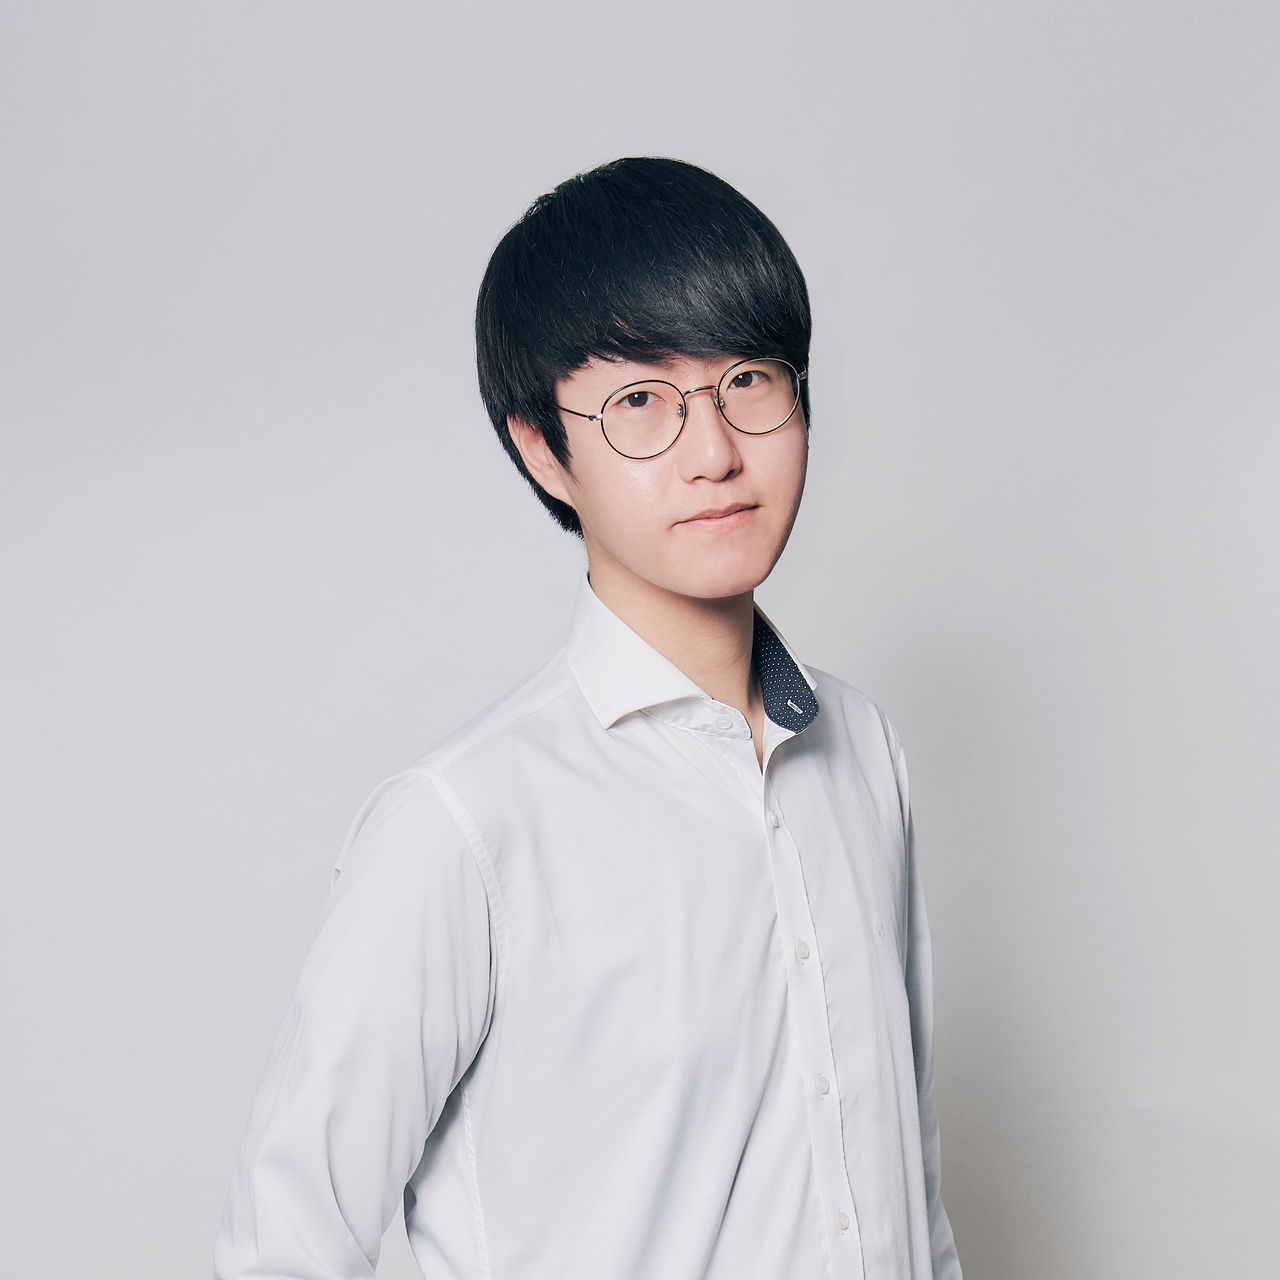 <b>Jang Seok Hyeon</b><br>Assistant Branch Director<br>